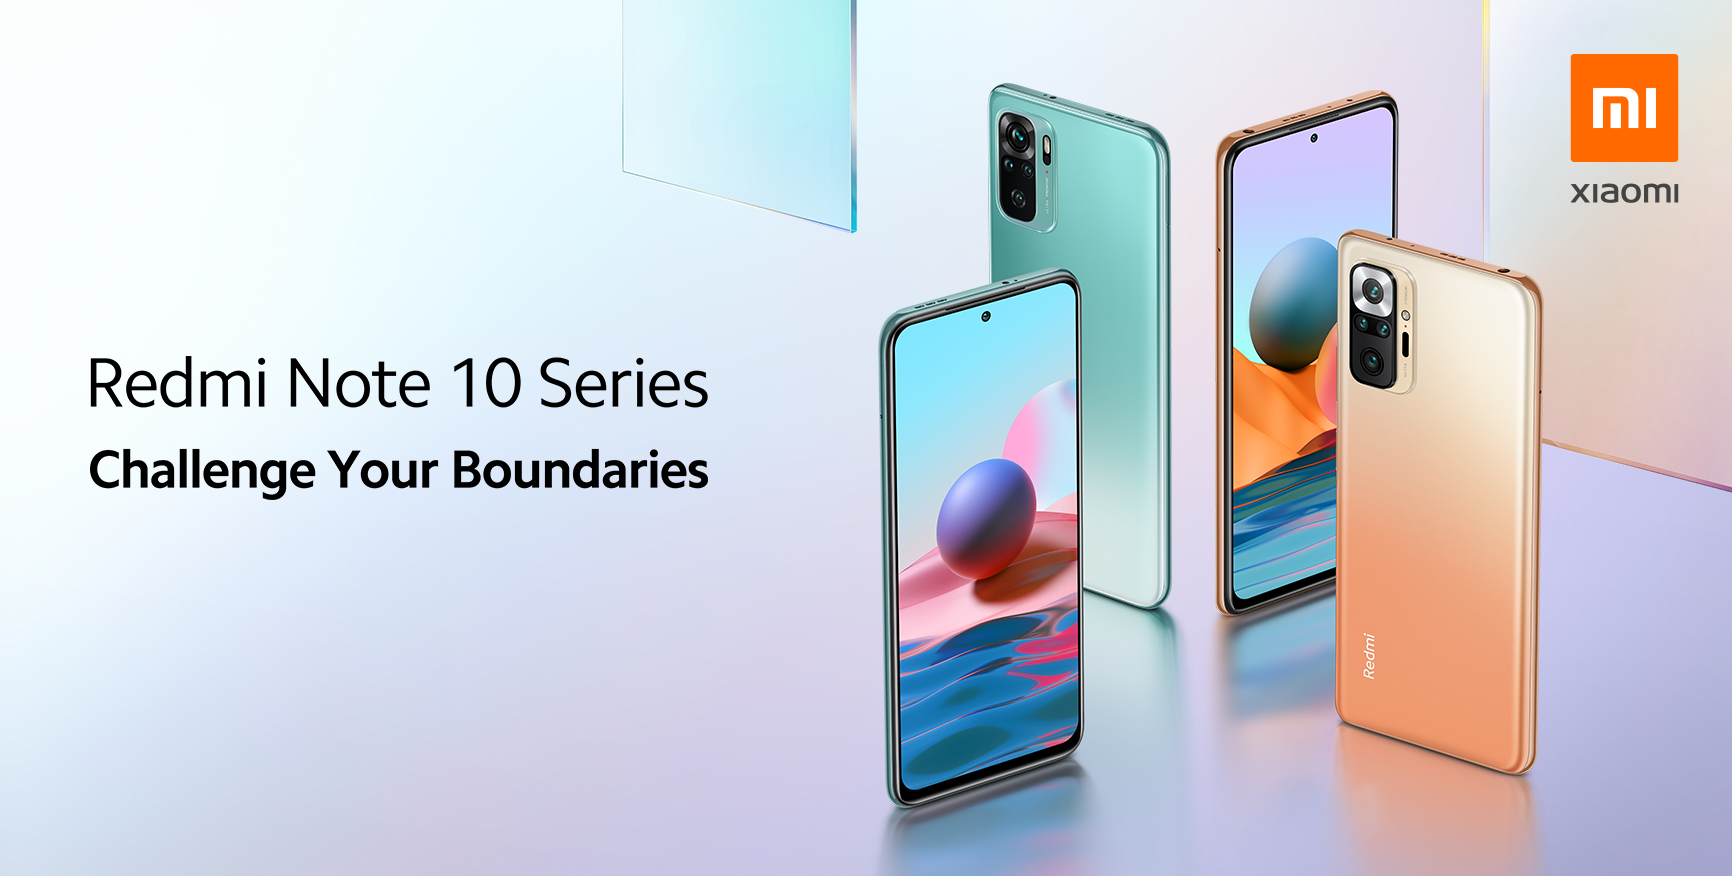 Redmi Note 10 Series Global Launch